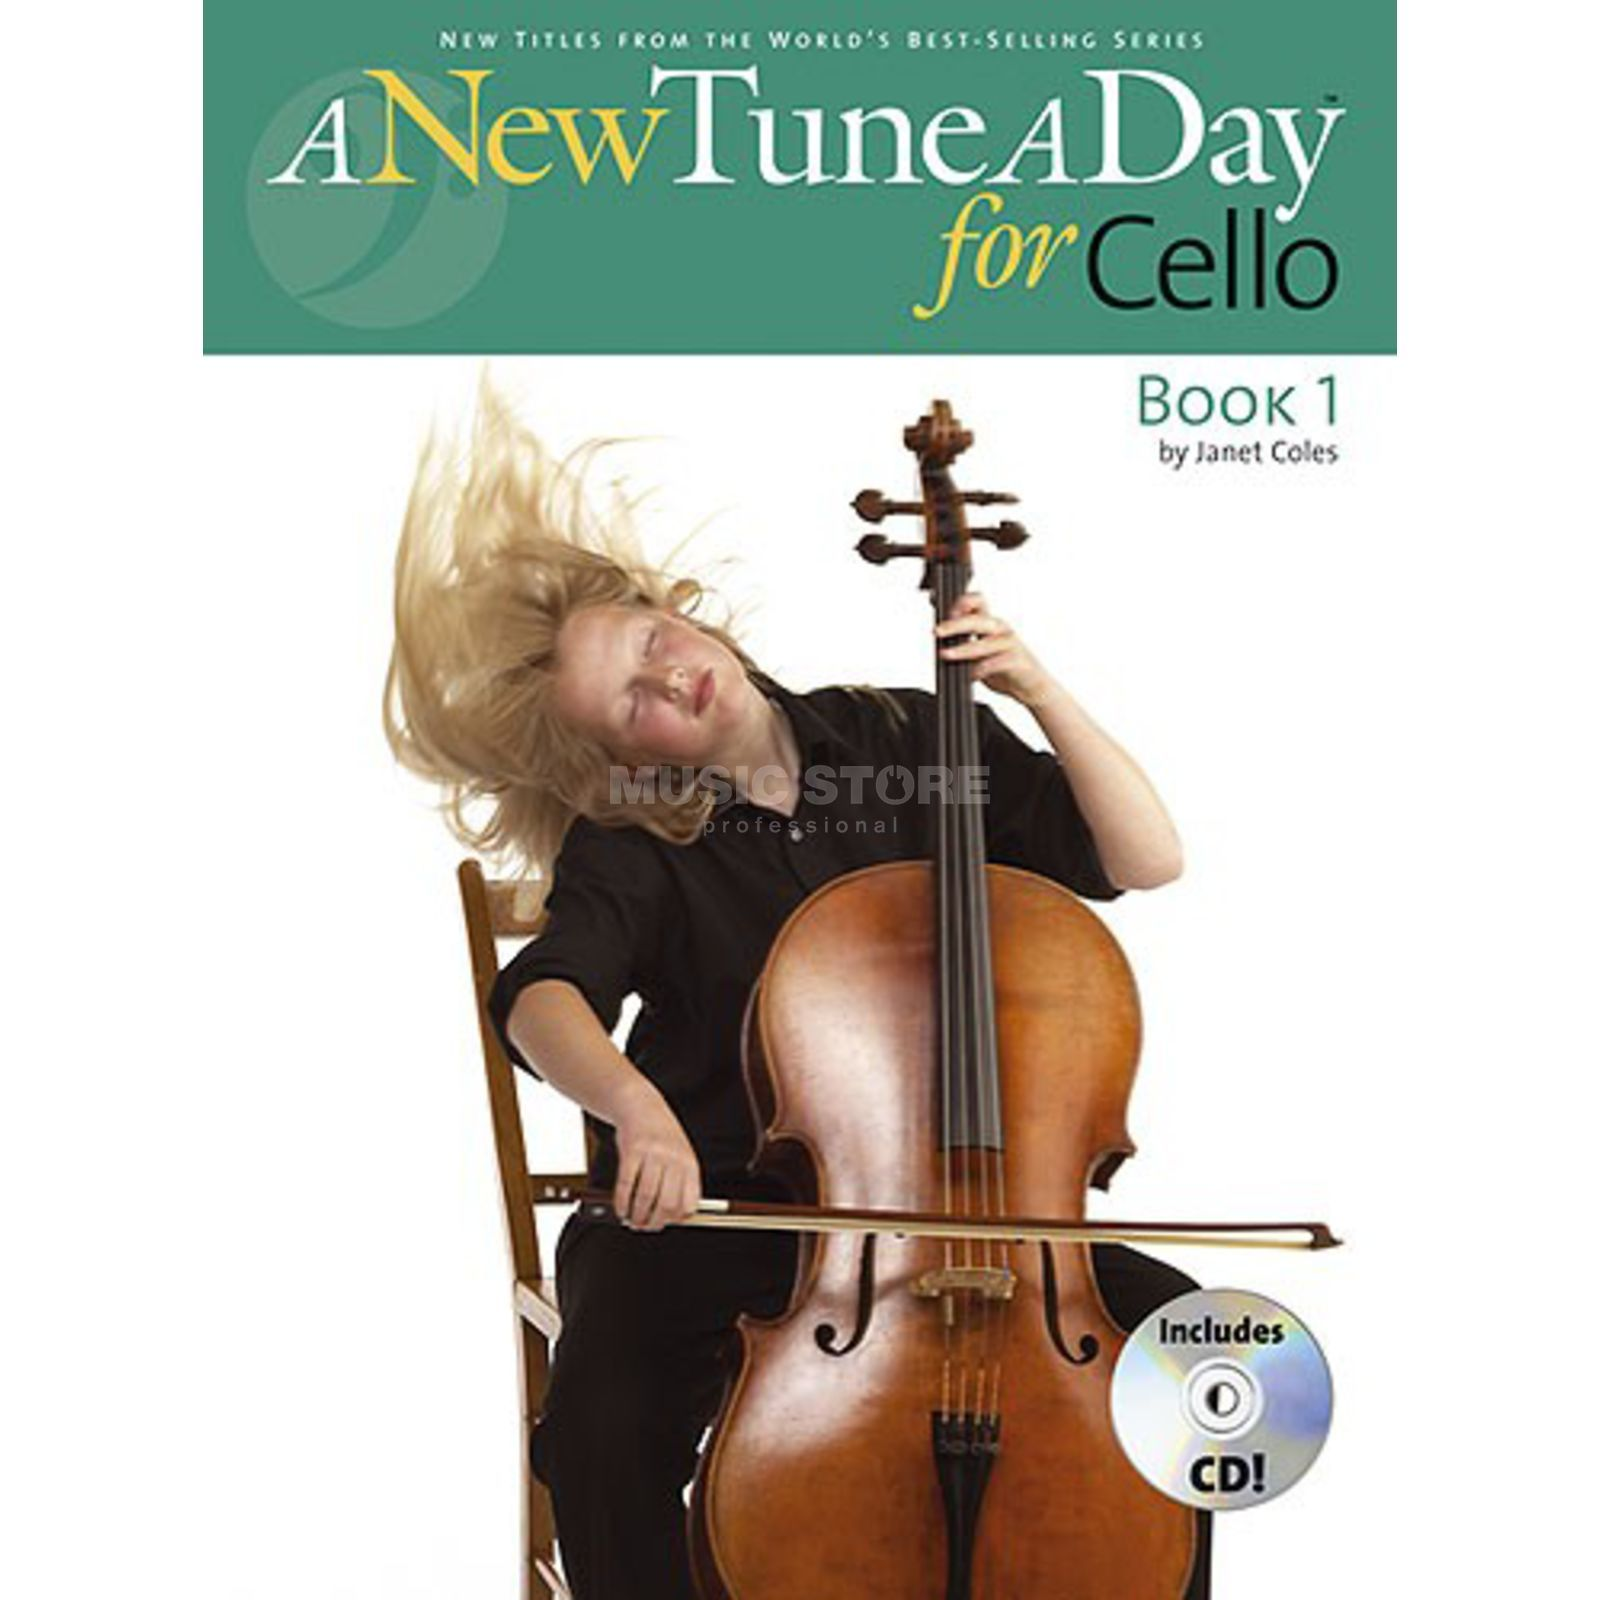 Boston Music A New Tune A Day: Cello Book 1 (CD Edition) Produktbillede